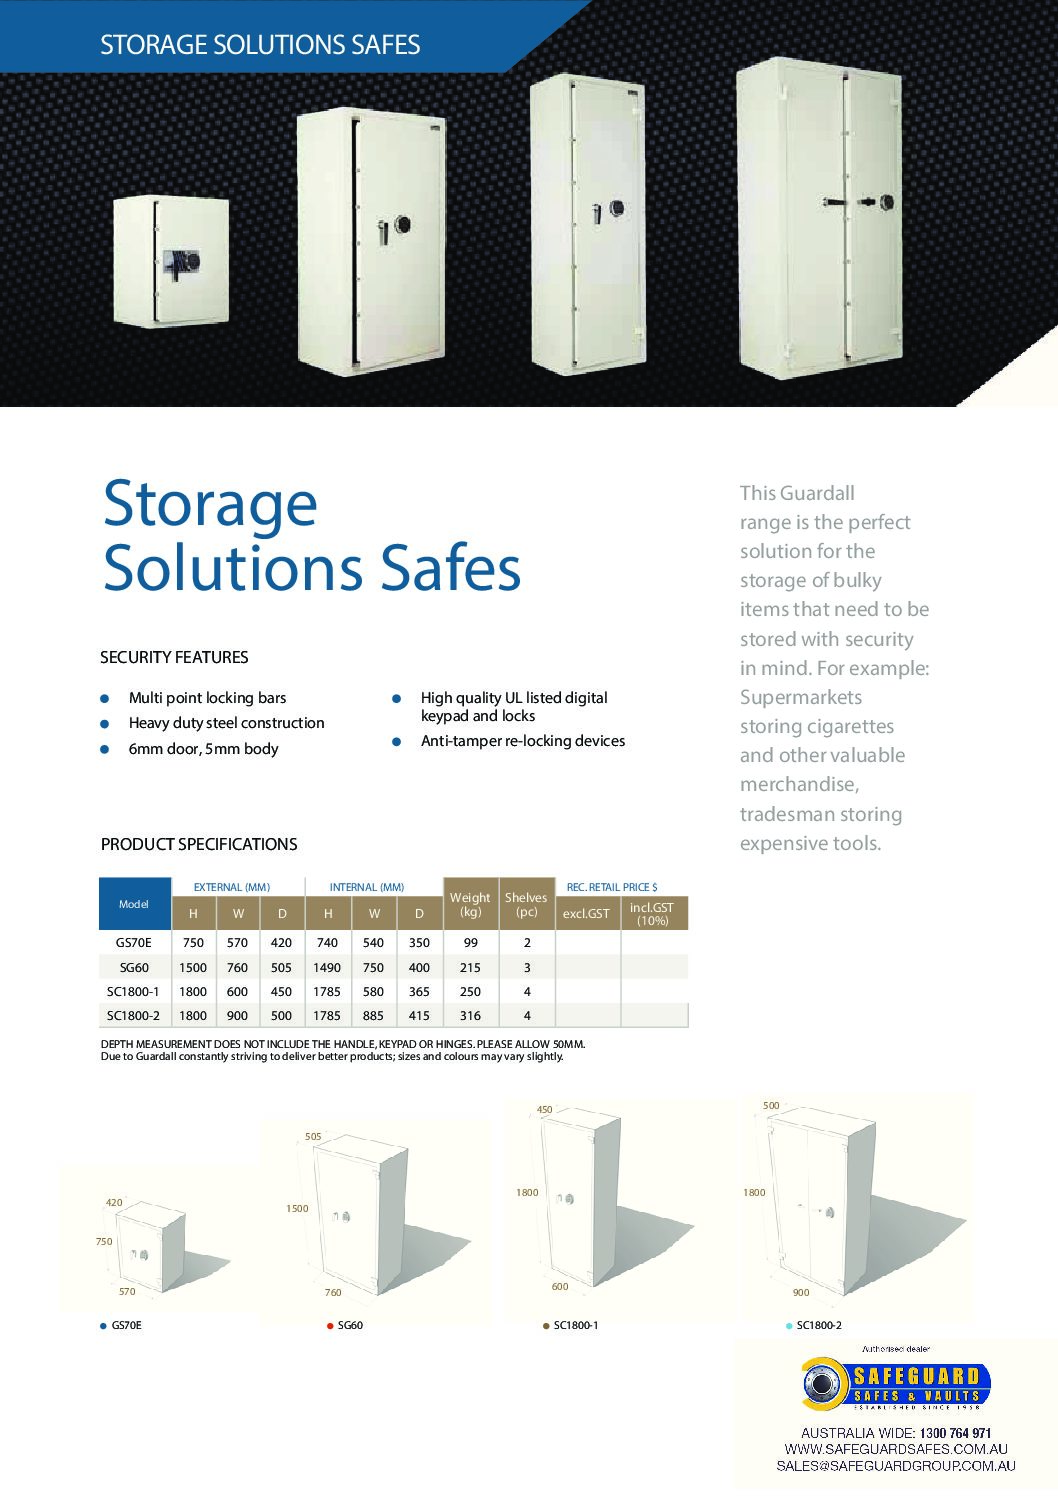 Storage Solution Safes [Guardall]